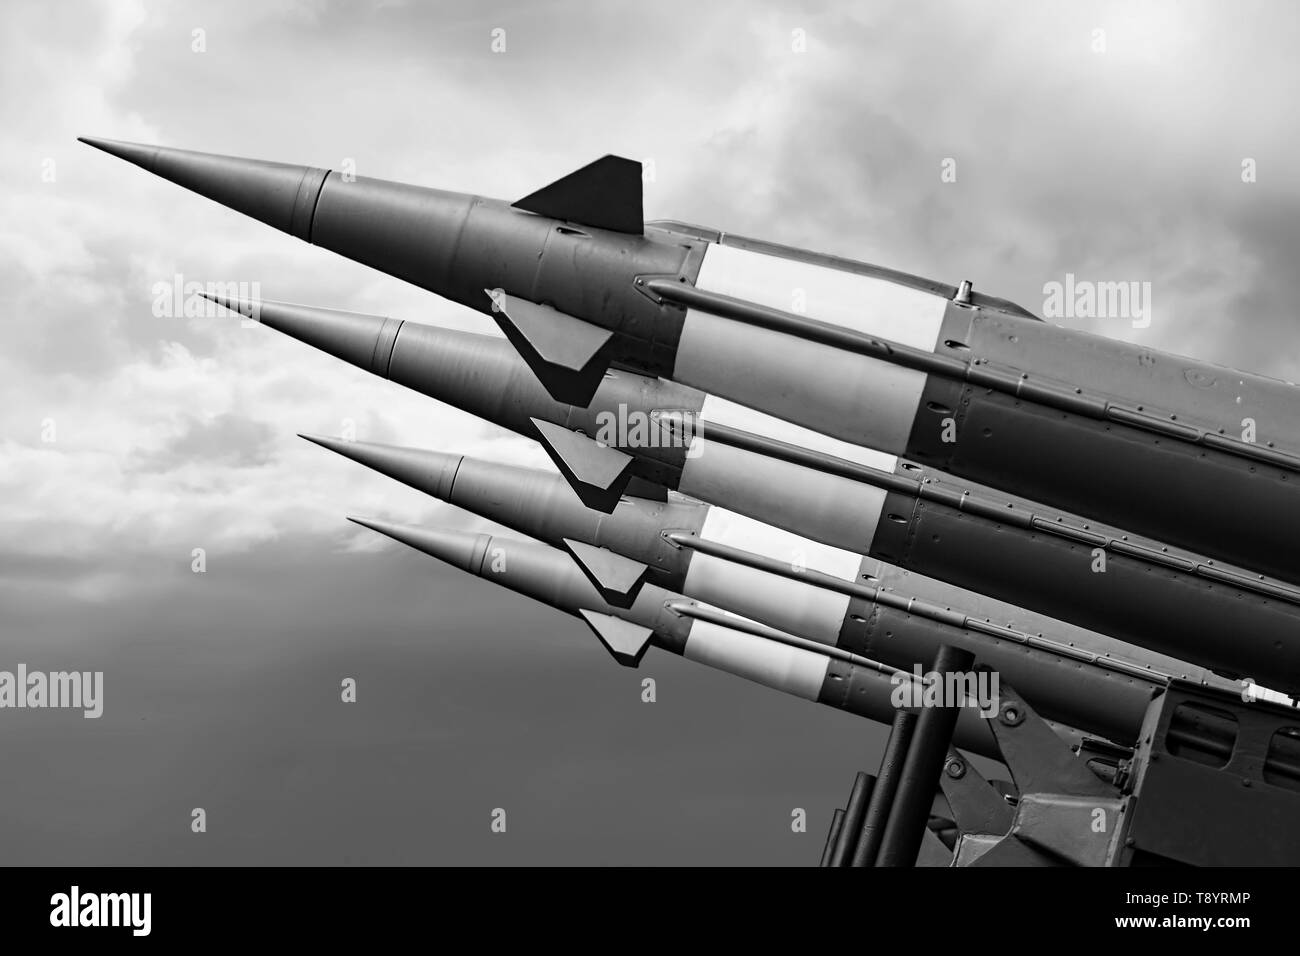 Balistic Rockets War Background. Nuclear Missiles With Warhead Aimed at Gloomy Sky. - Stock Image